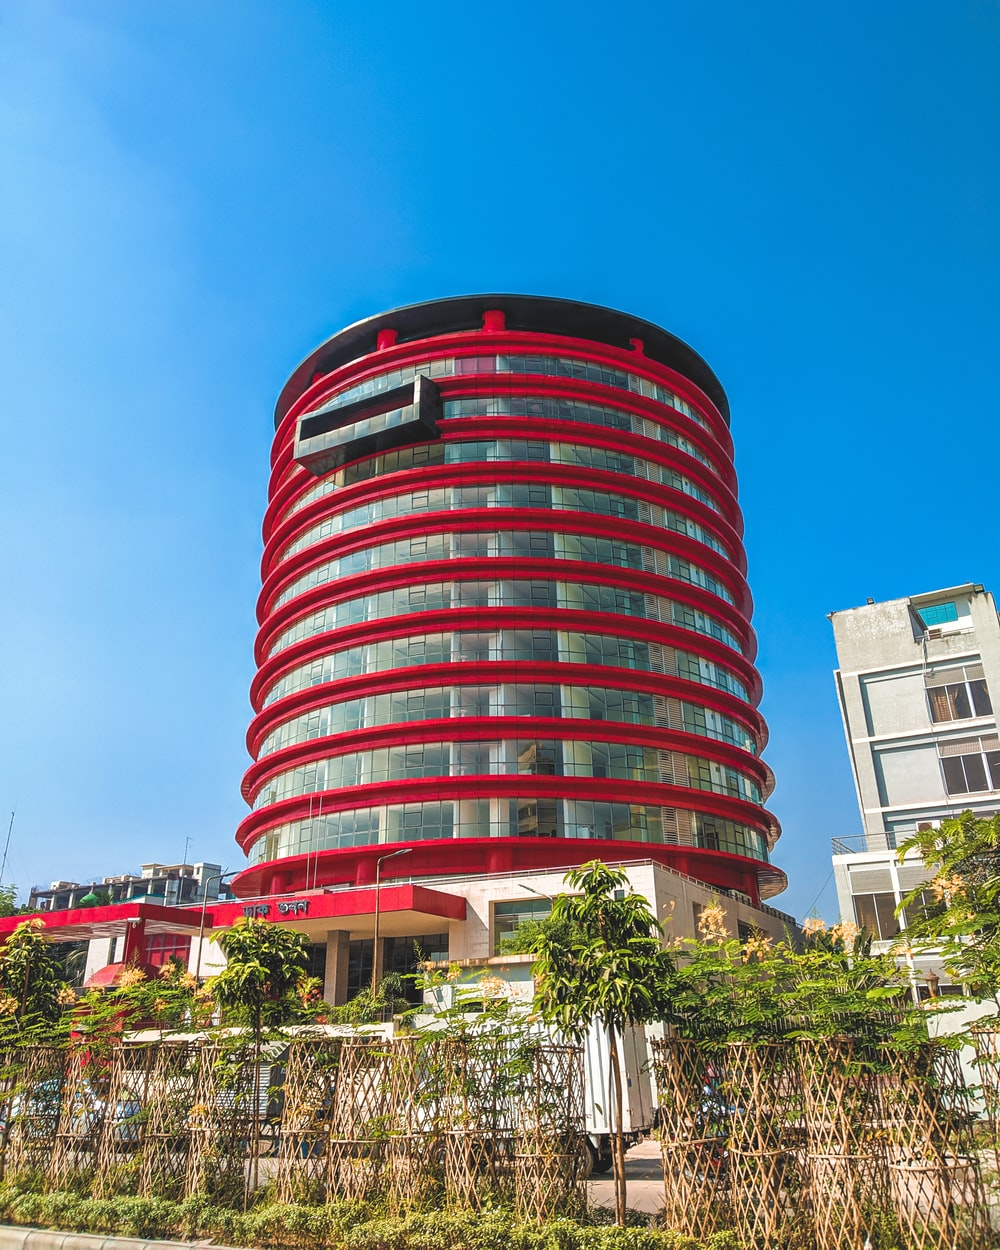 red and white concrete building during daytime